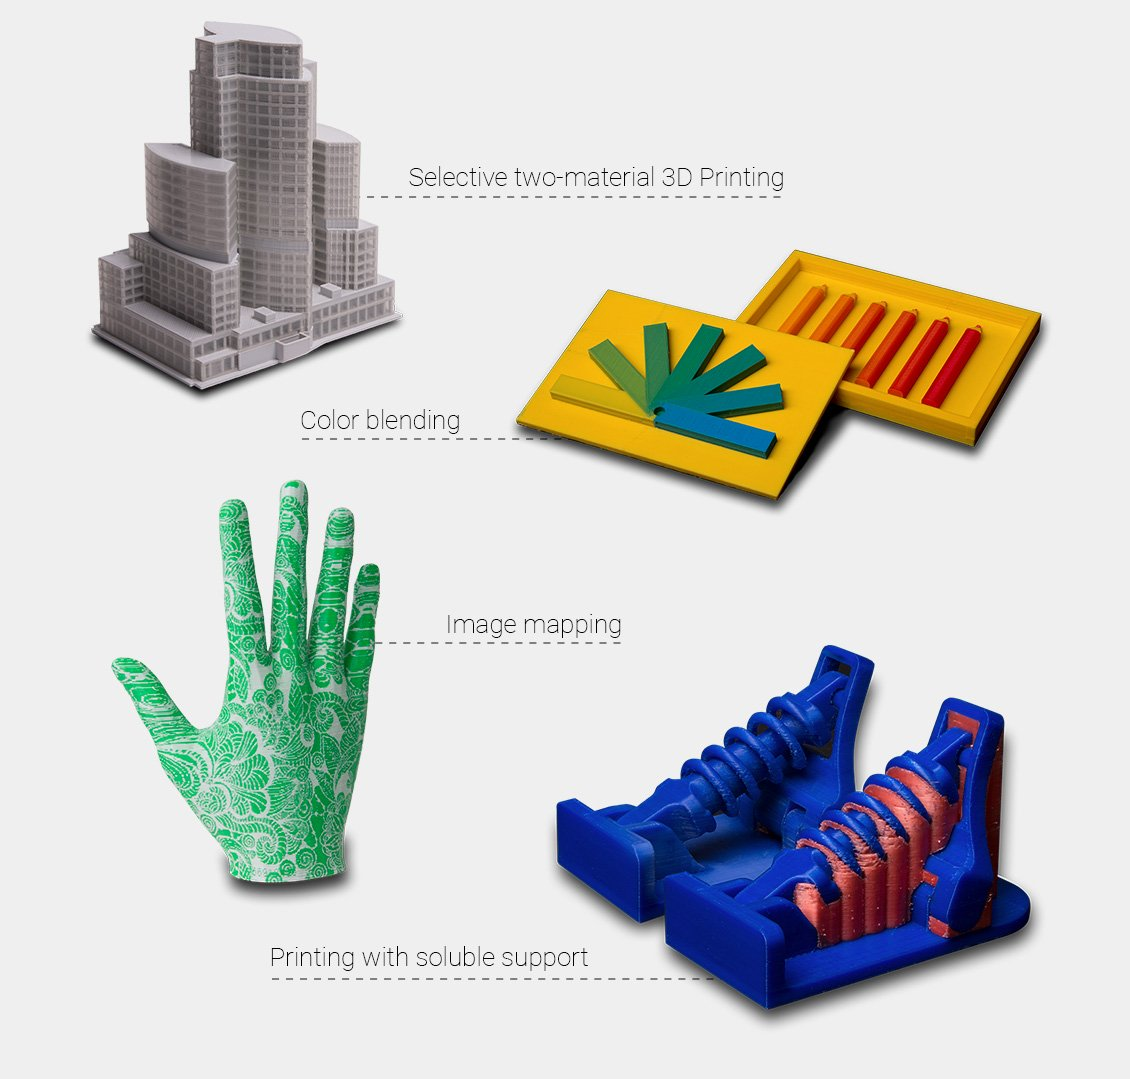 Advanced multi-material 3D printing